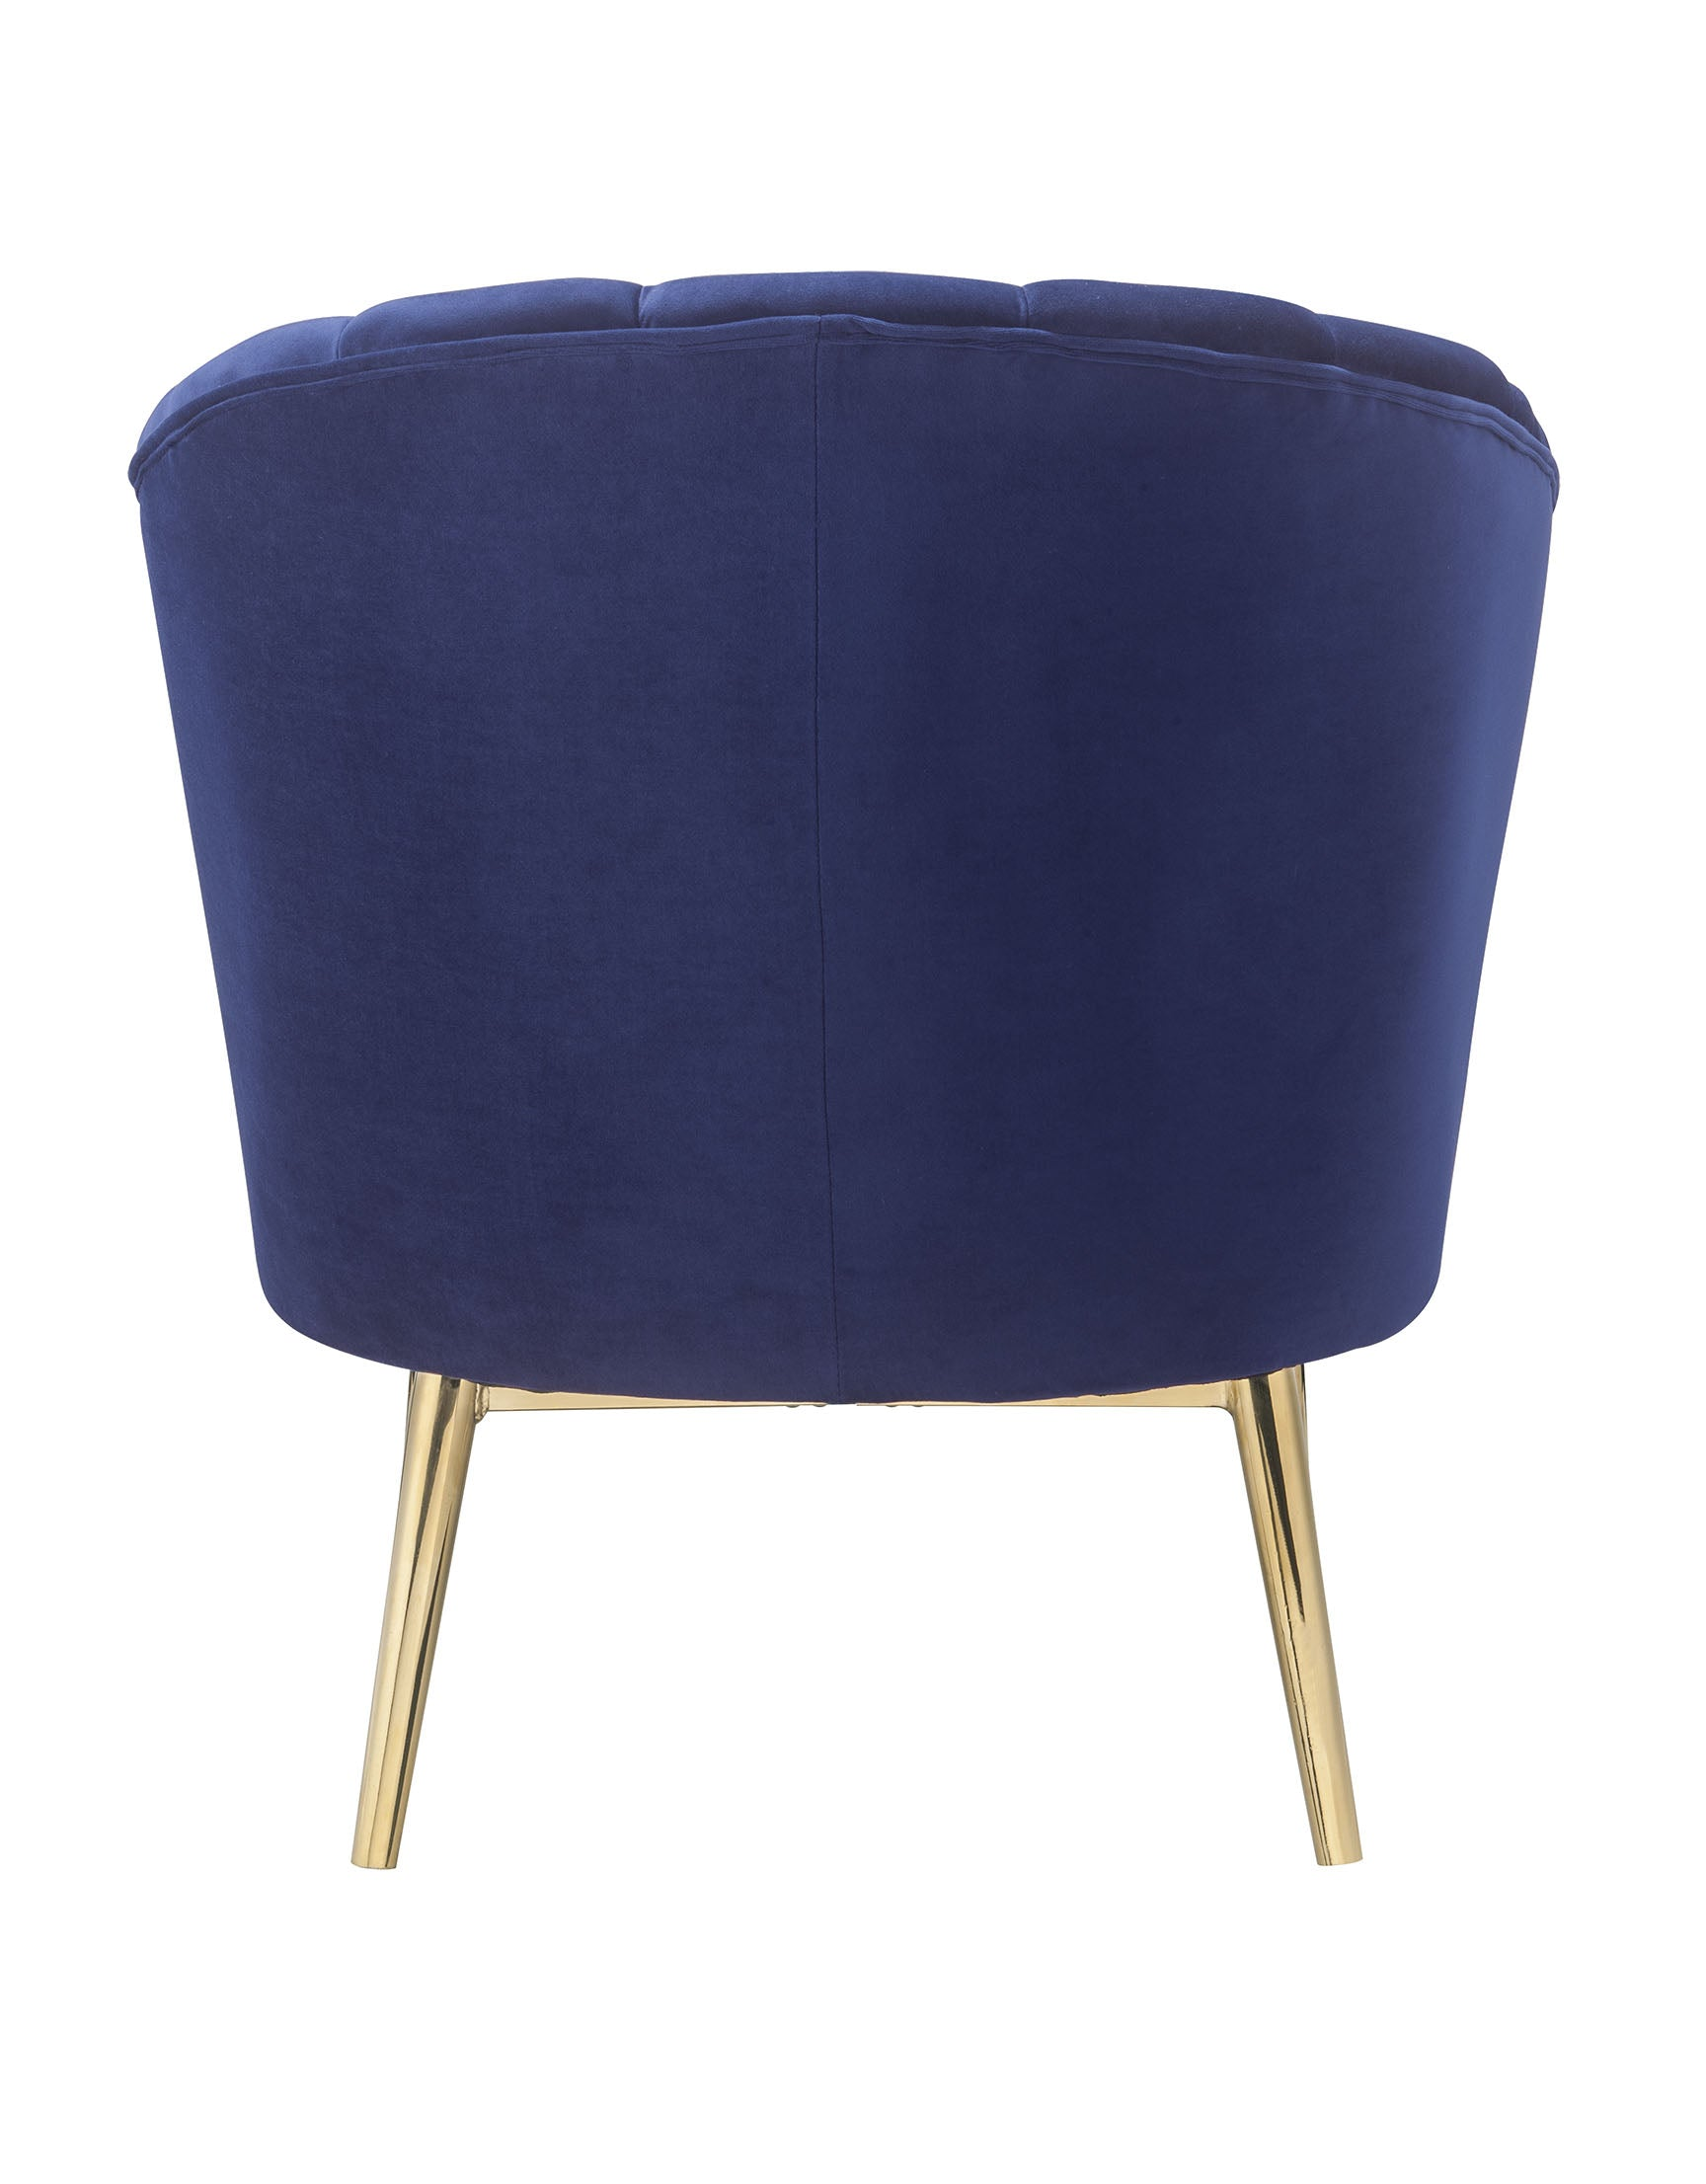 "32"" X 31"" X 34"" Blue Accent Chair"